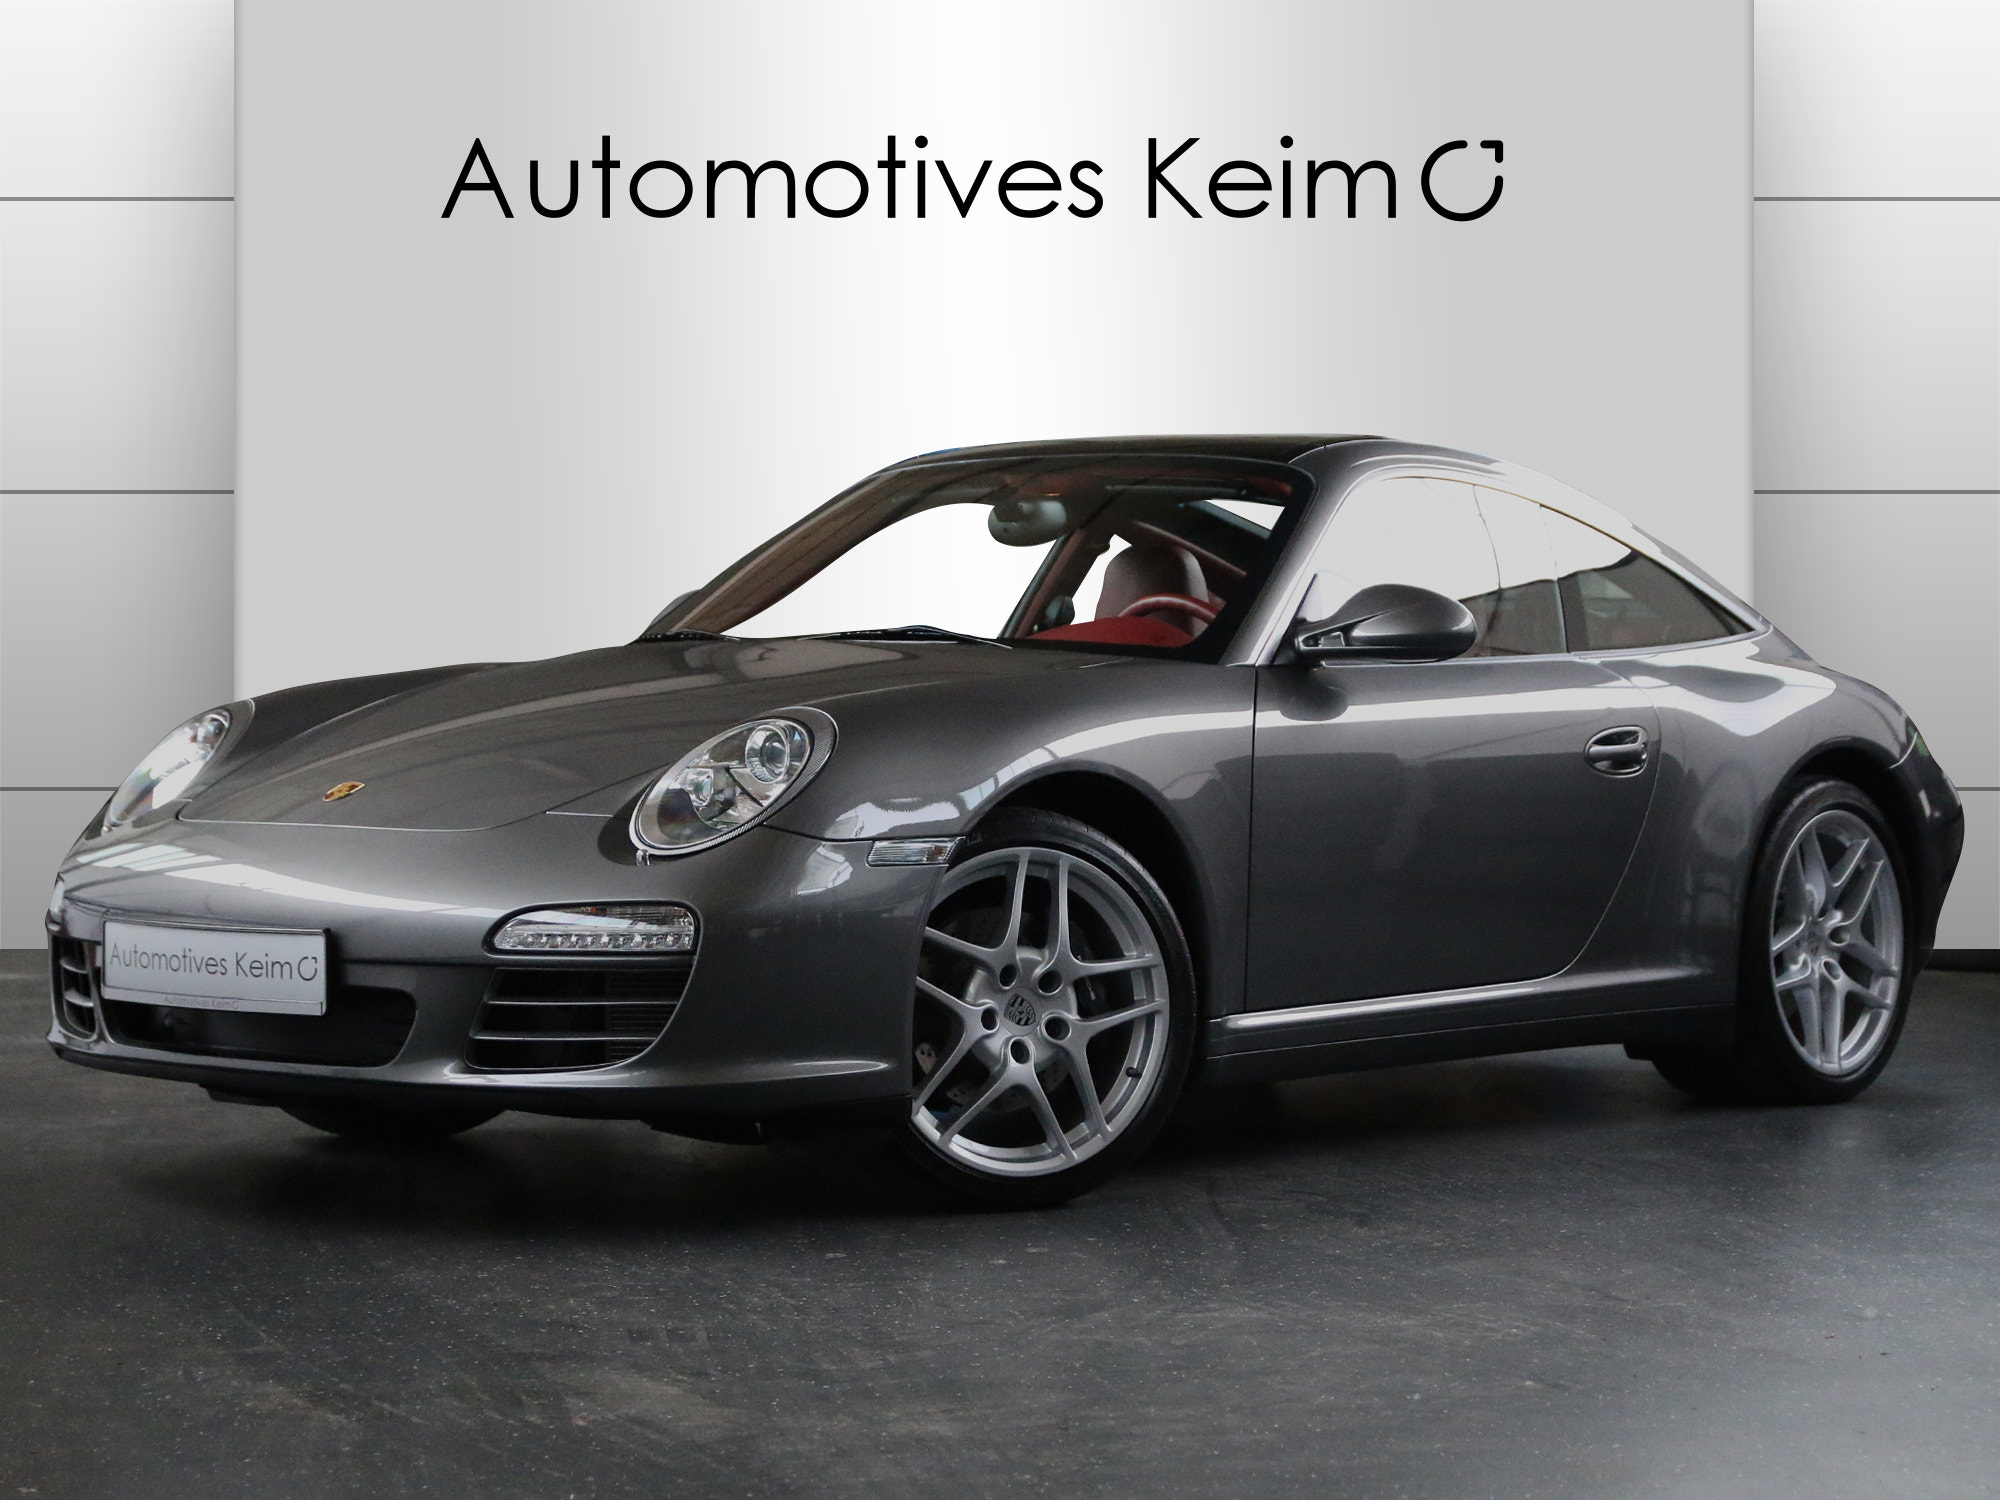 PORSCHE 911 997 Automotives Keim GmbH 63500 Seligenstadt Www.automotives Keim.de Oliver Keim 000025